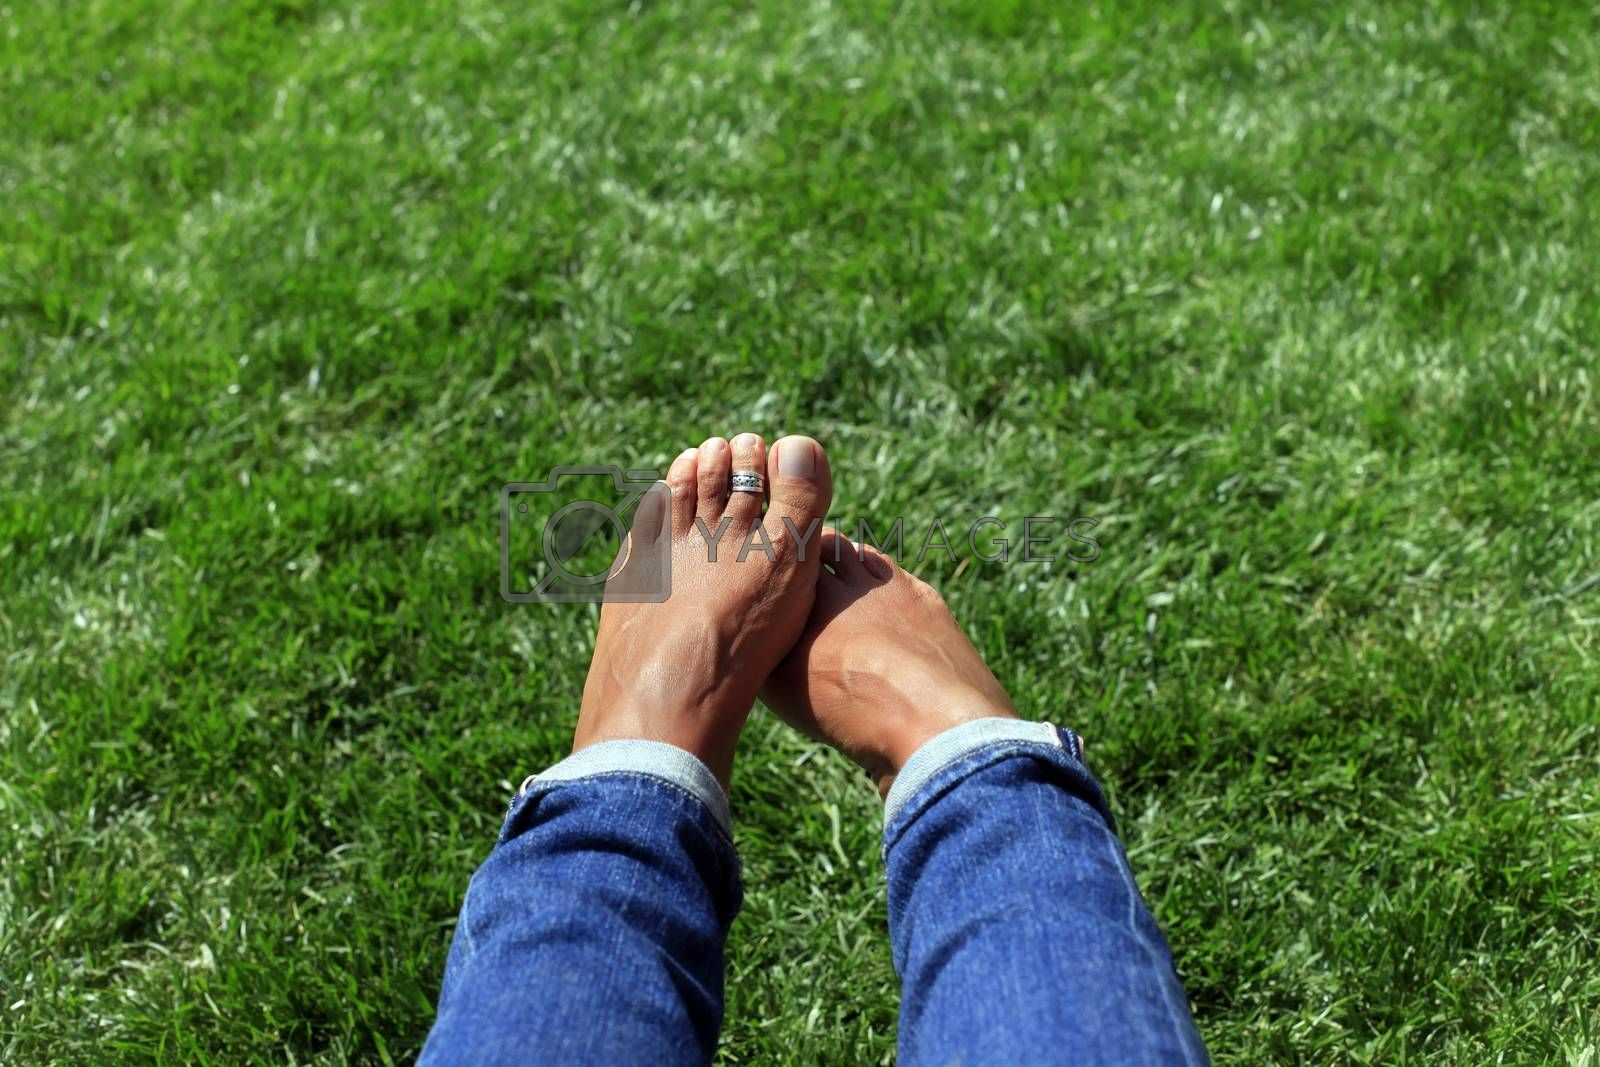 Bare feet in green grass, woman relaxing in nature